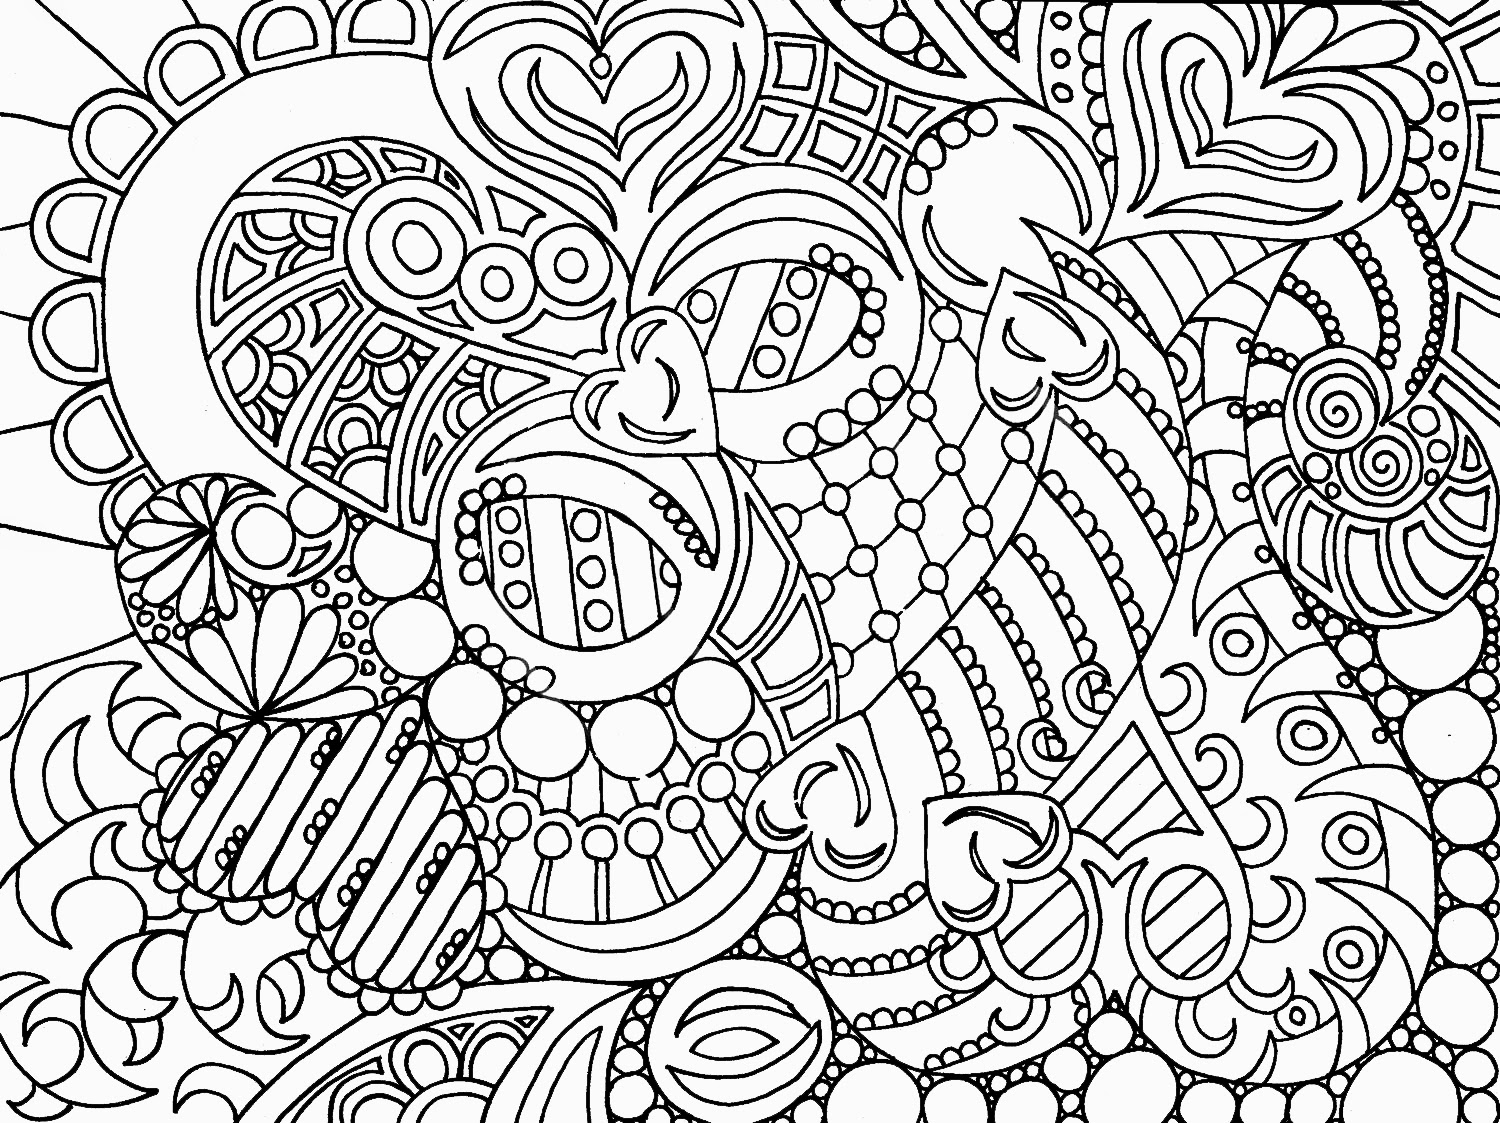 abstract coloring pages free online printable coloring pages sheets for kids get the latest free abstract coloring pages images favorite coloring pages - Coloring Pages Free Online 2